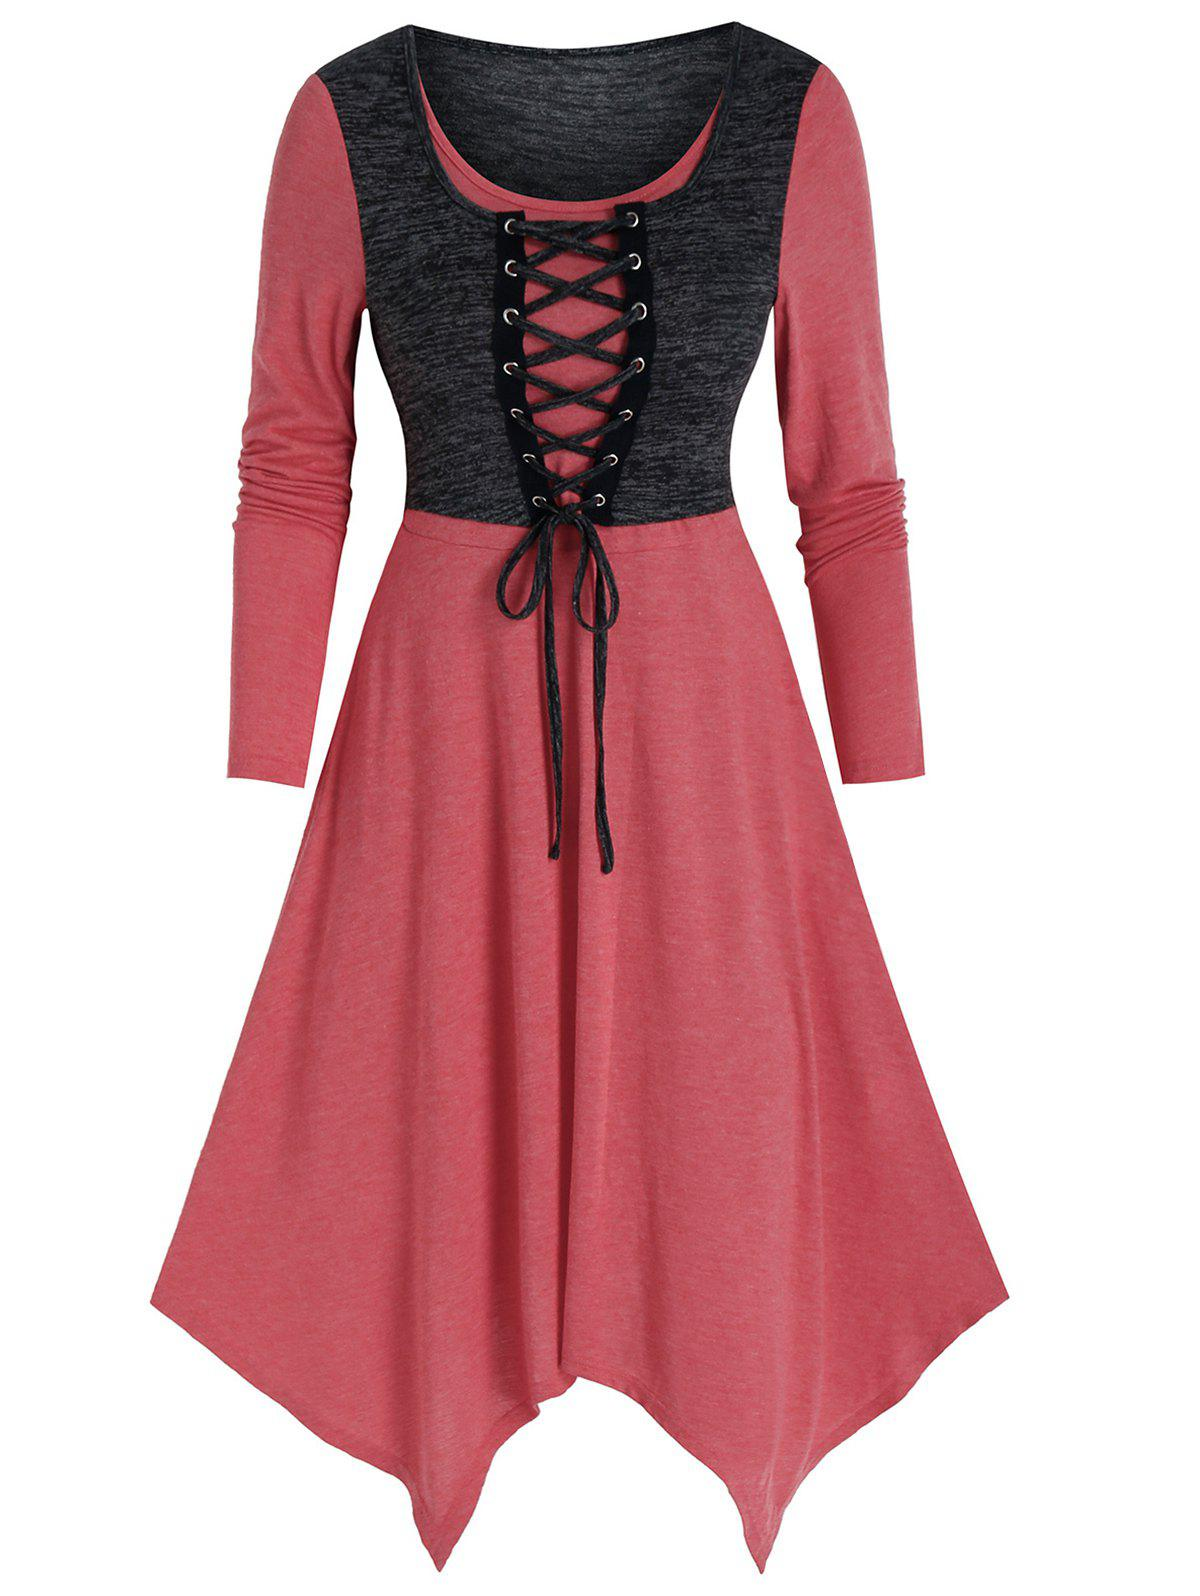 Outfits 2 in 1 Lace Up Asymmetric Long Sleeve Dress